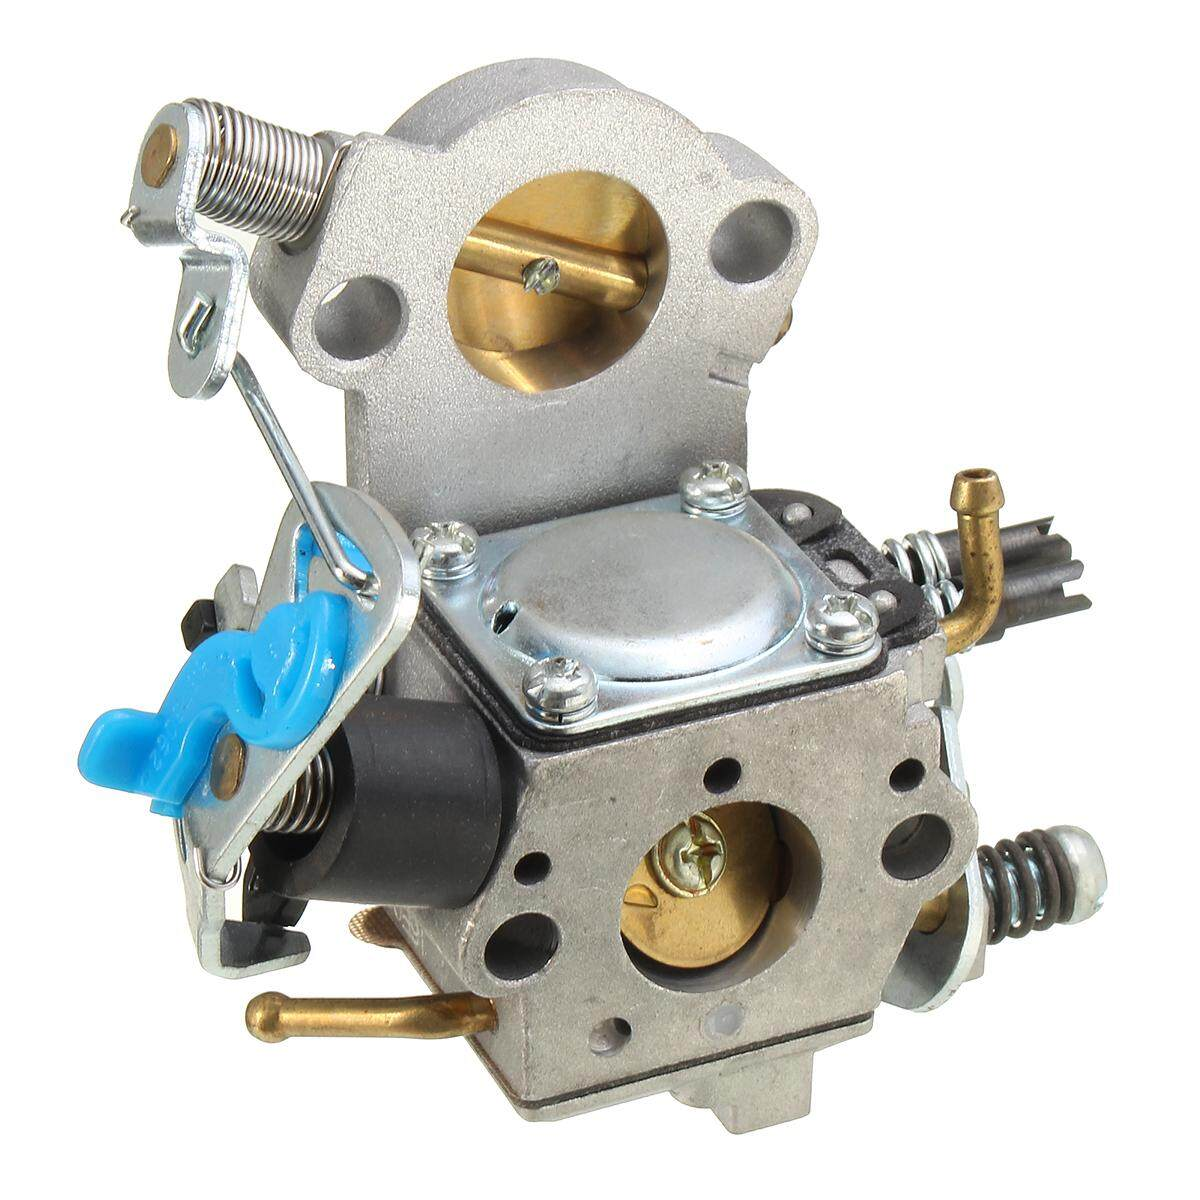 Carburetor Carb 544883001 544888301 for Husqvarna 460 455 Rancher Chainsaw WTA29 - intl